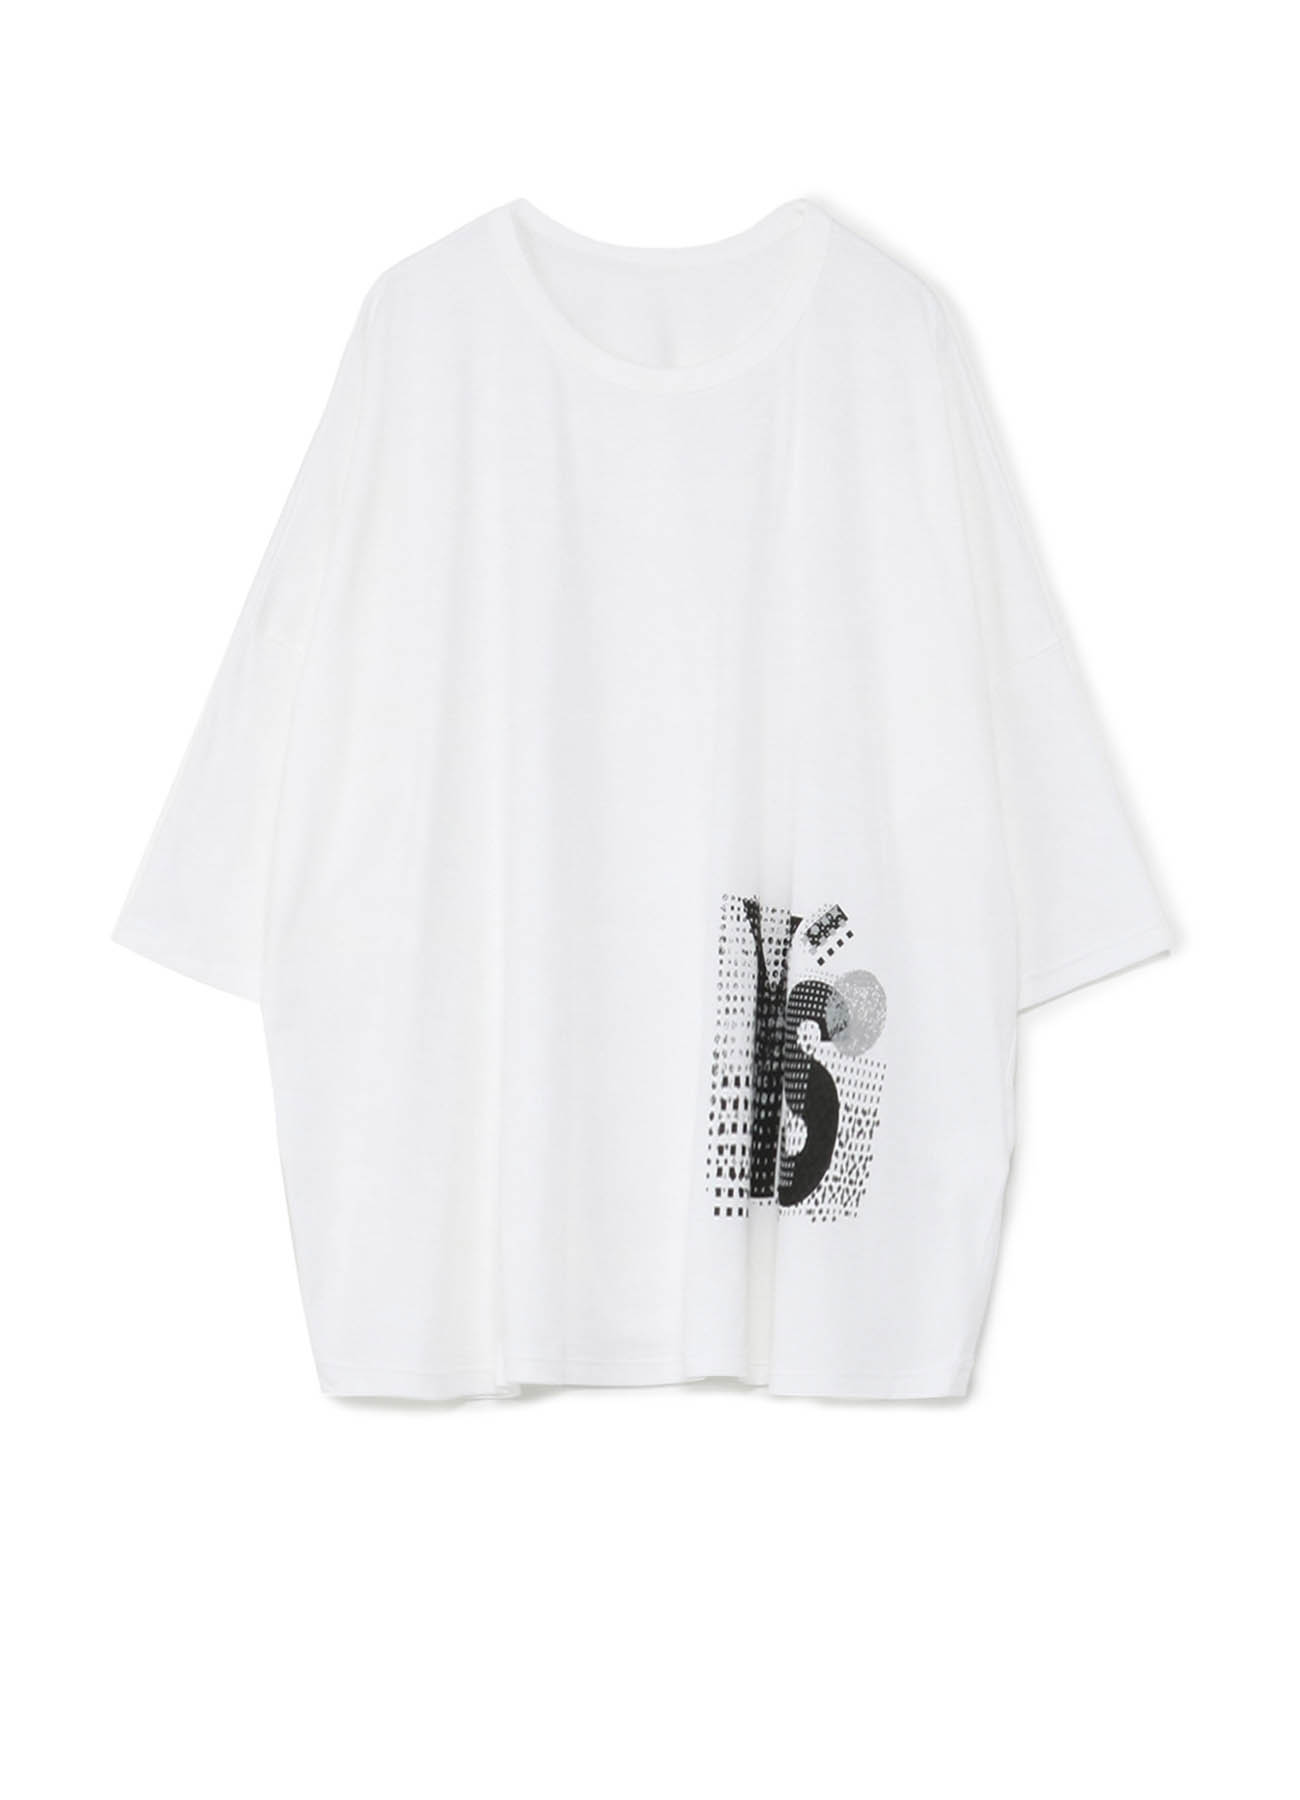 COTTON COLLAGE PRINT BIG T-SHIRT